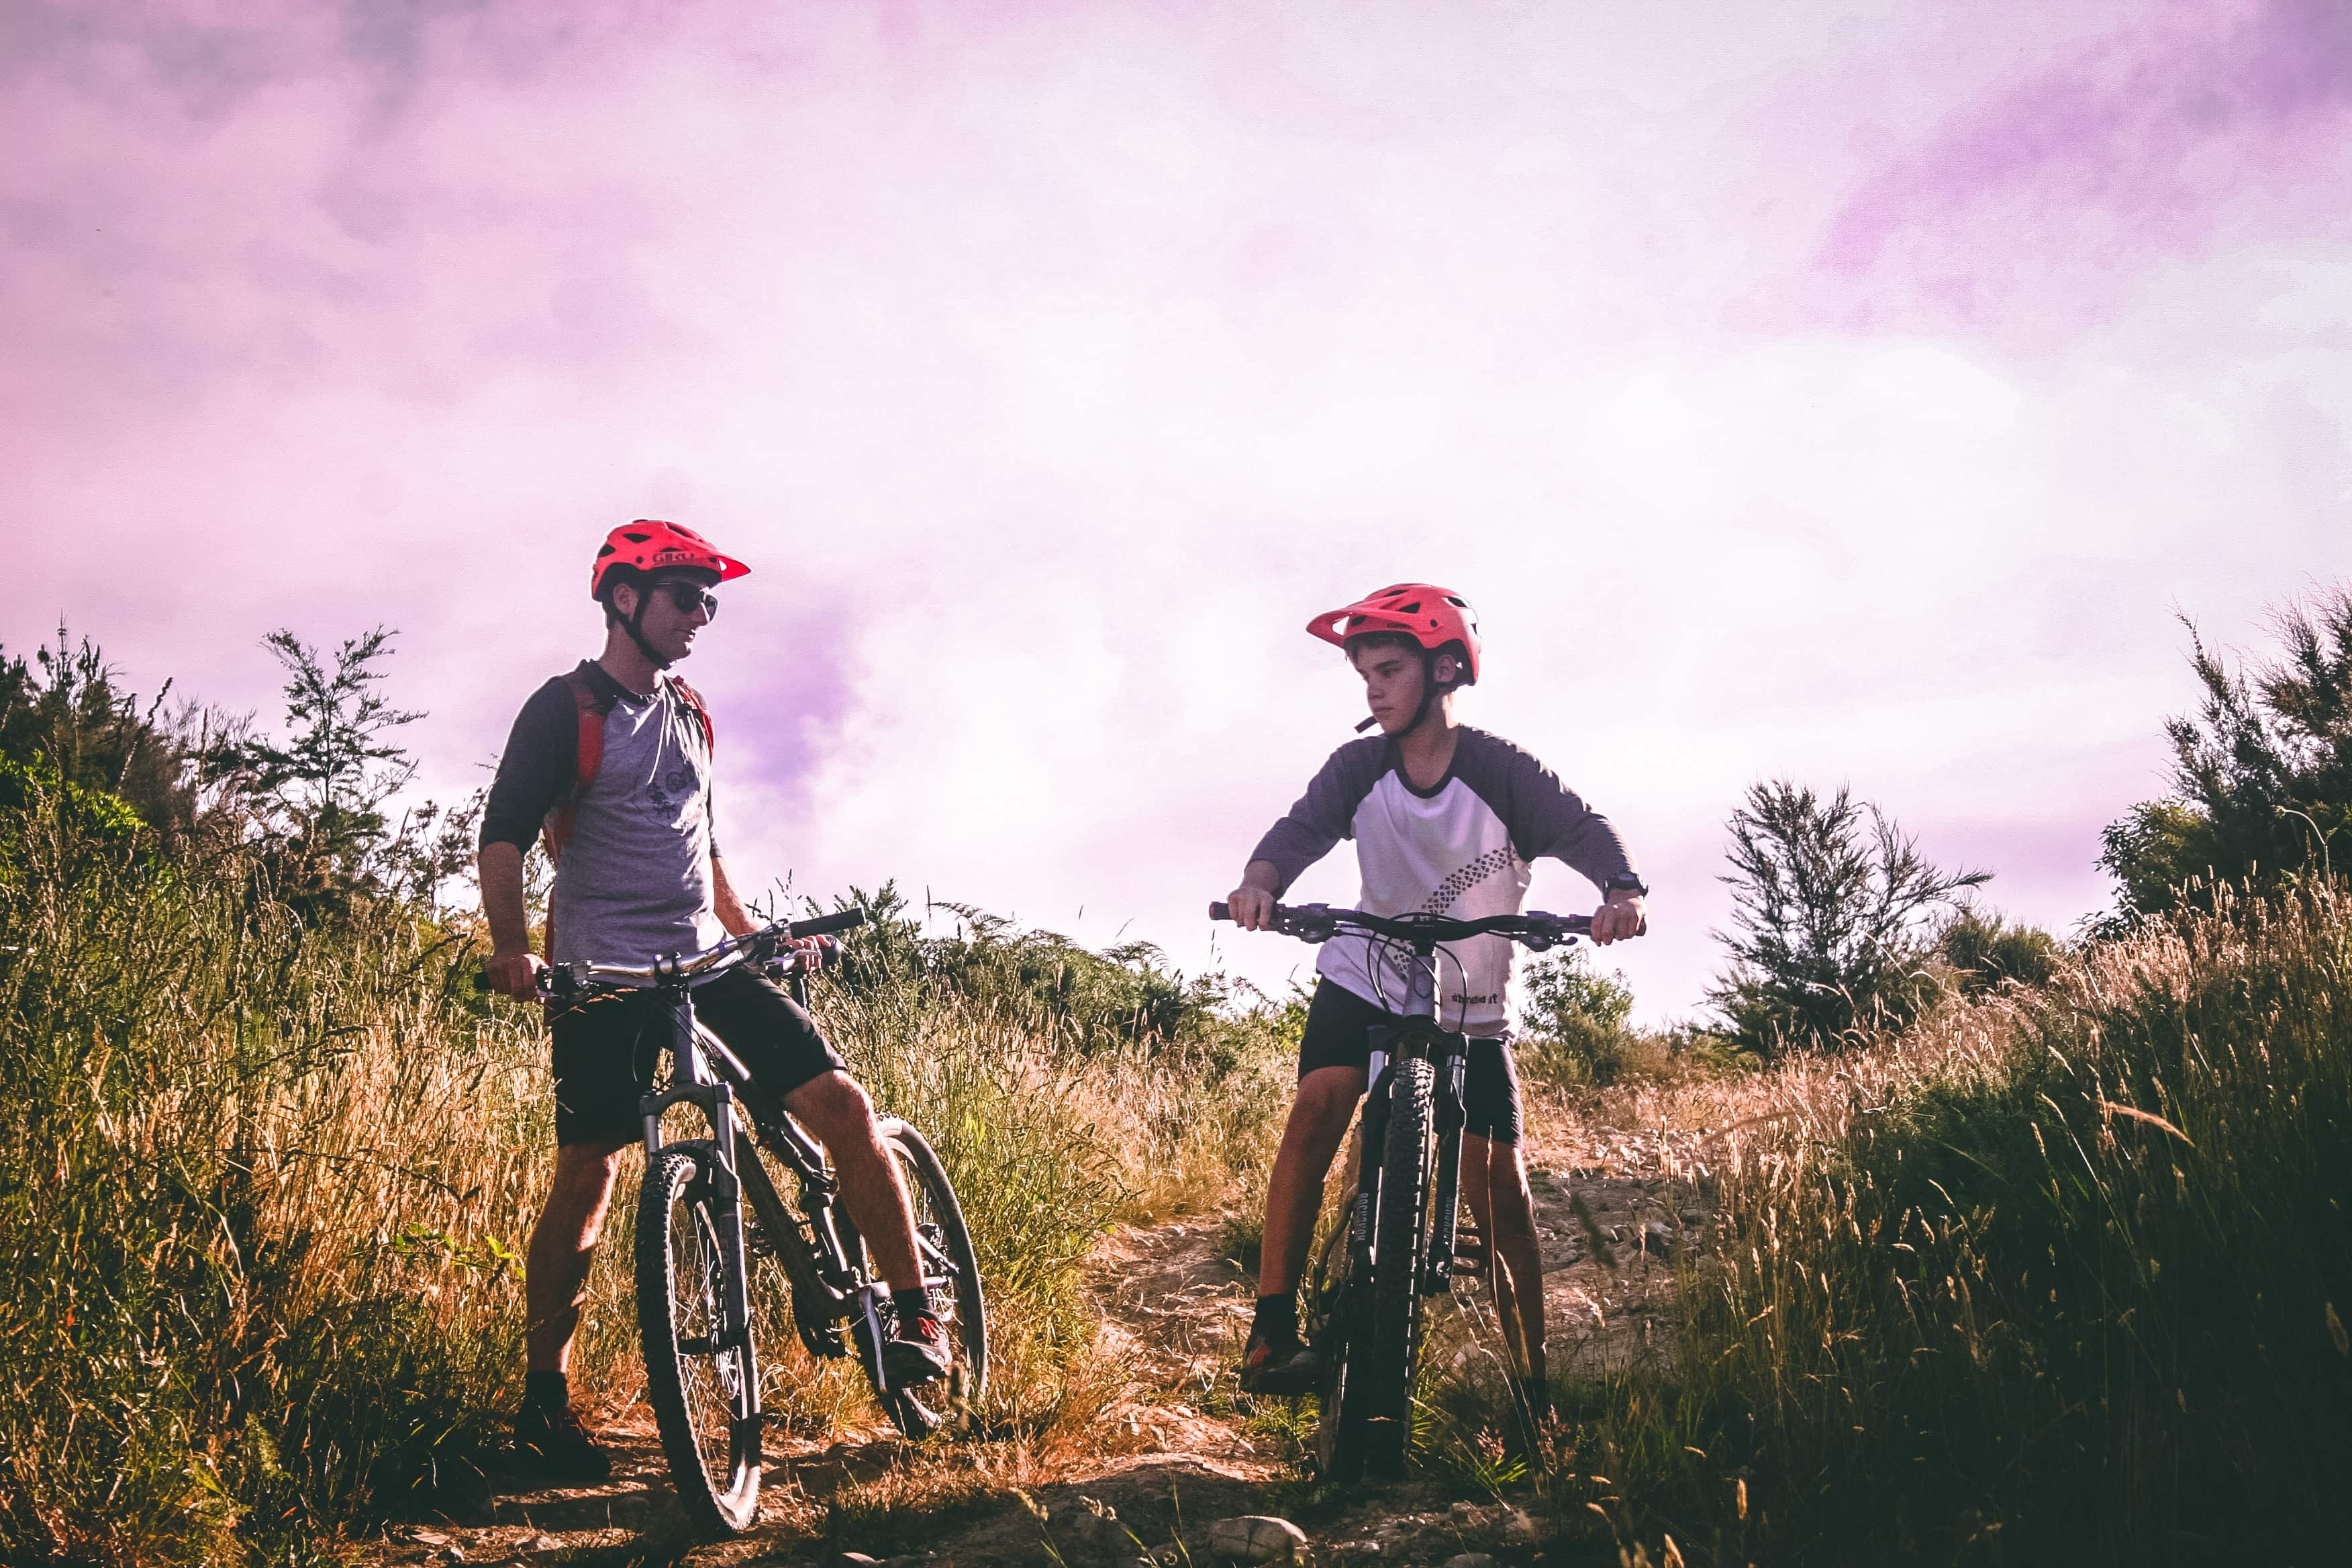 5 useful tips for when cycling with your family